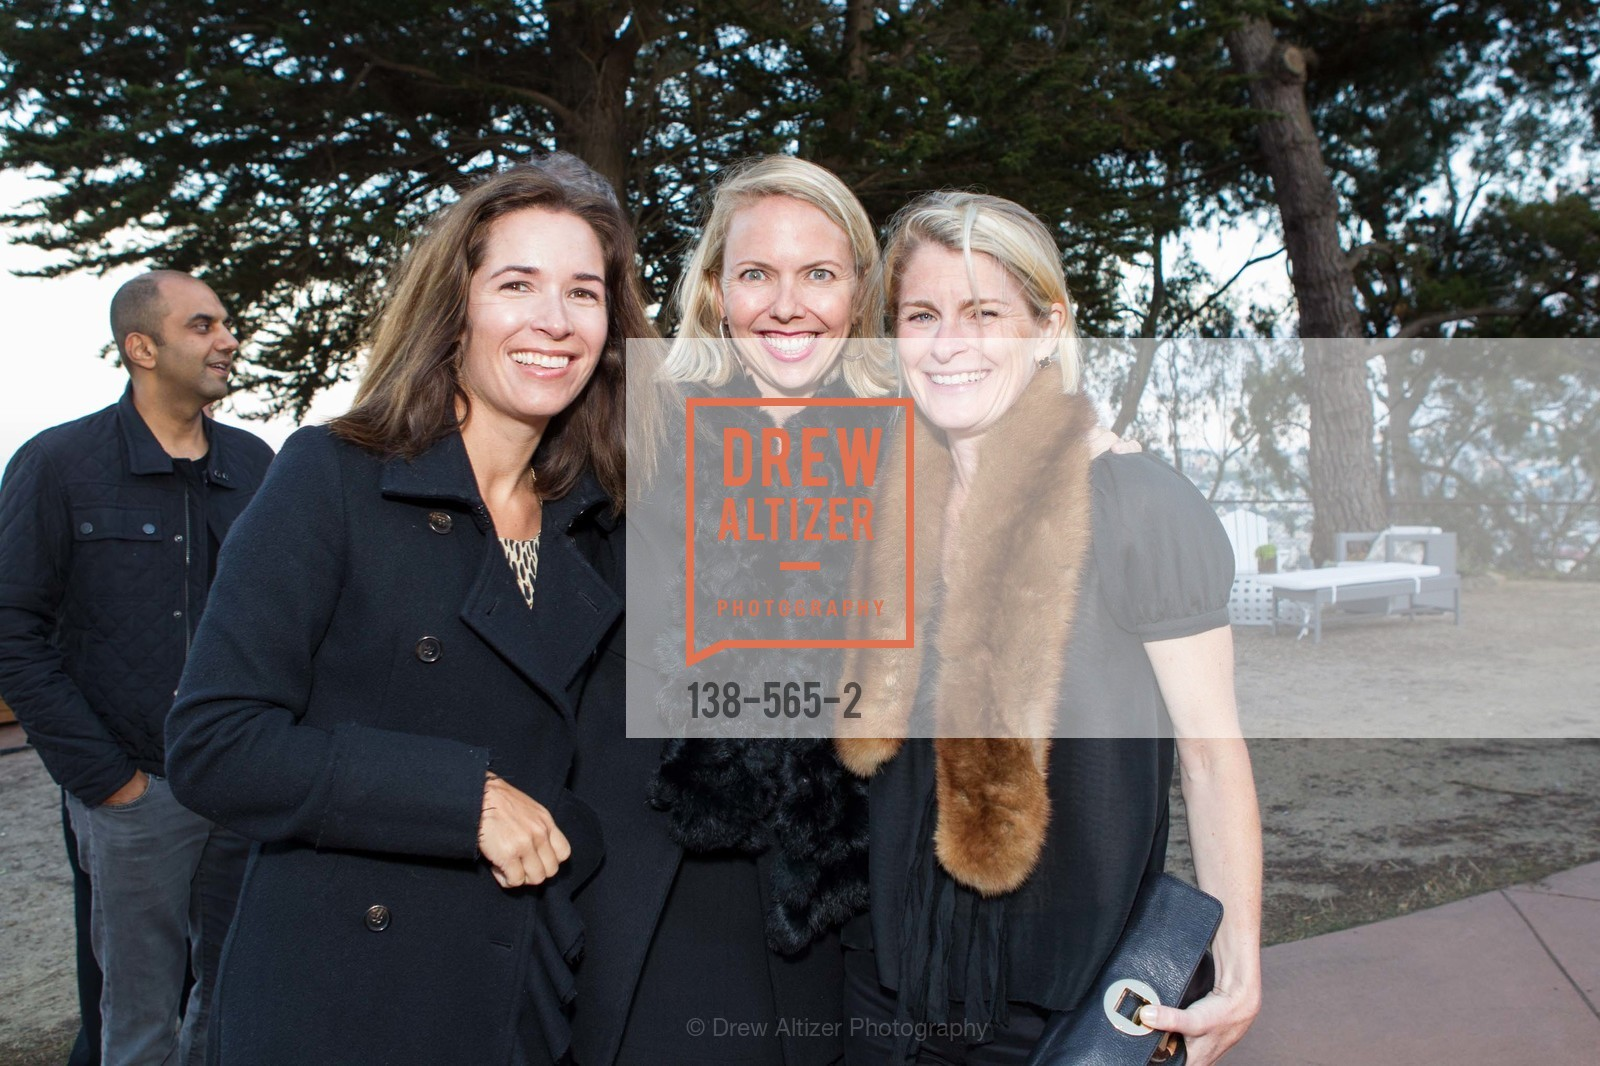 Amanda Marmer, Misty Meier, Ashley Linnenbach, GLAAD GALA Kick-Off Party Hosted by SAKS FIFTH AVENUE, Saks Fifth Avenue. 384 Post Street, September 12th, 2014,Drew Altizer, Drew Altizer Photography, full-service agency, private events, San Francisco photographer, photographer california